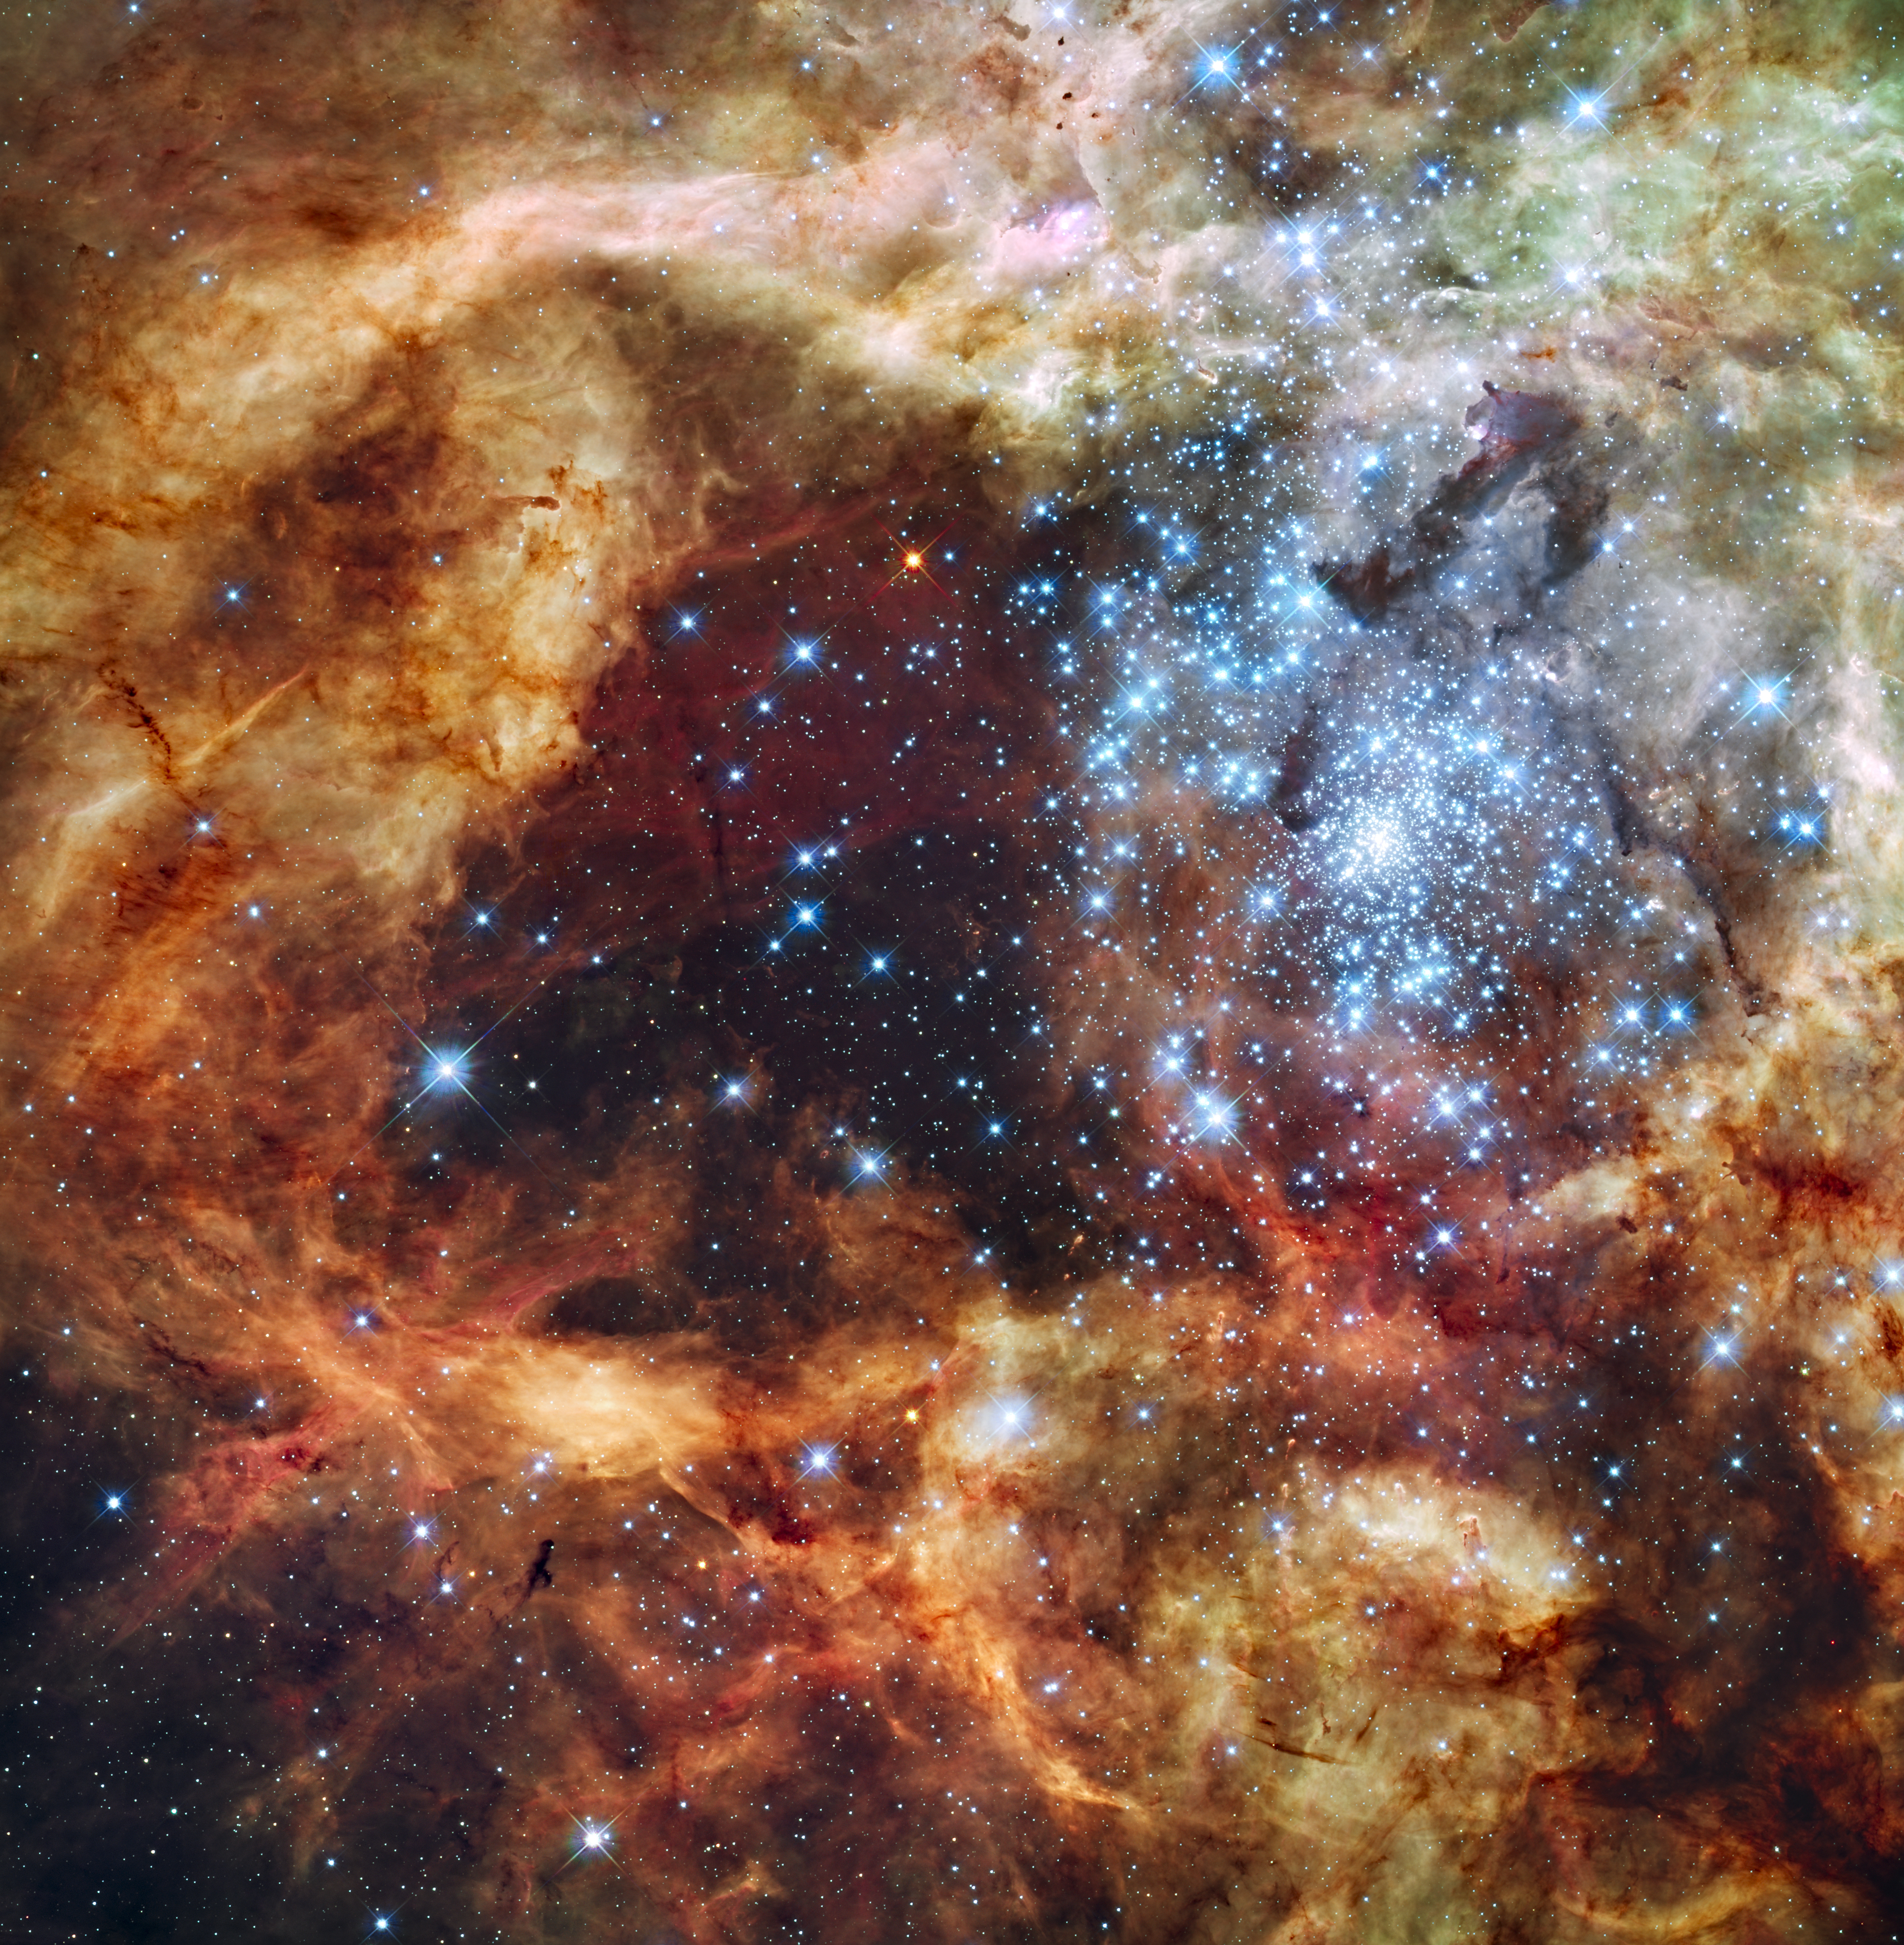 Region r136 in ngc 2070 captured by the hubble space telescope